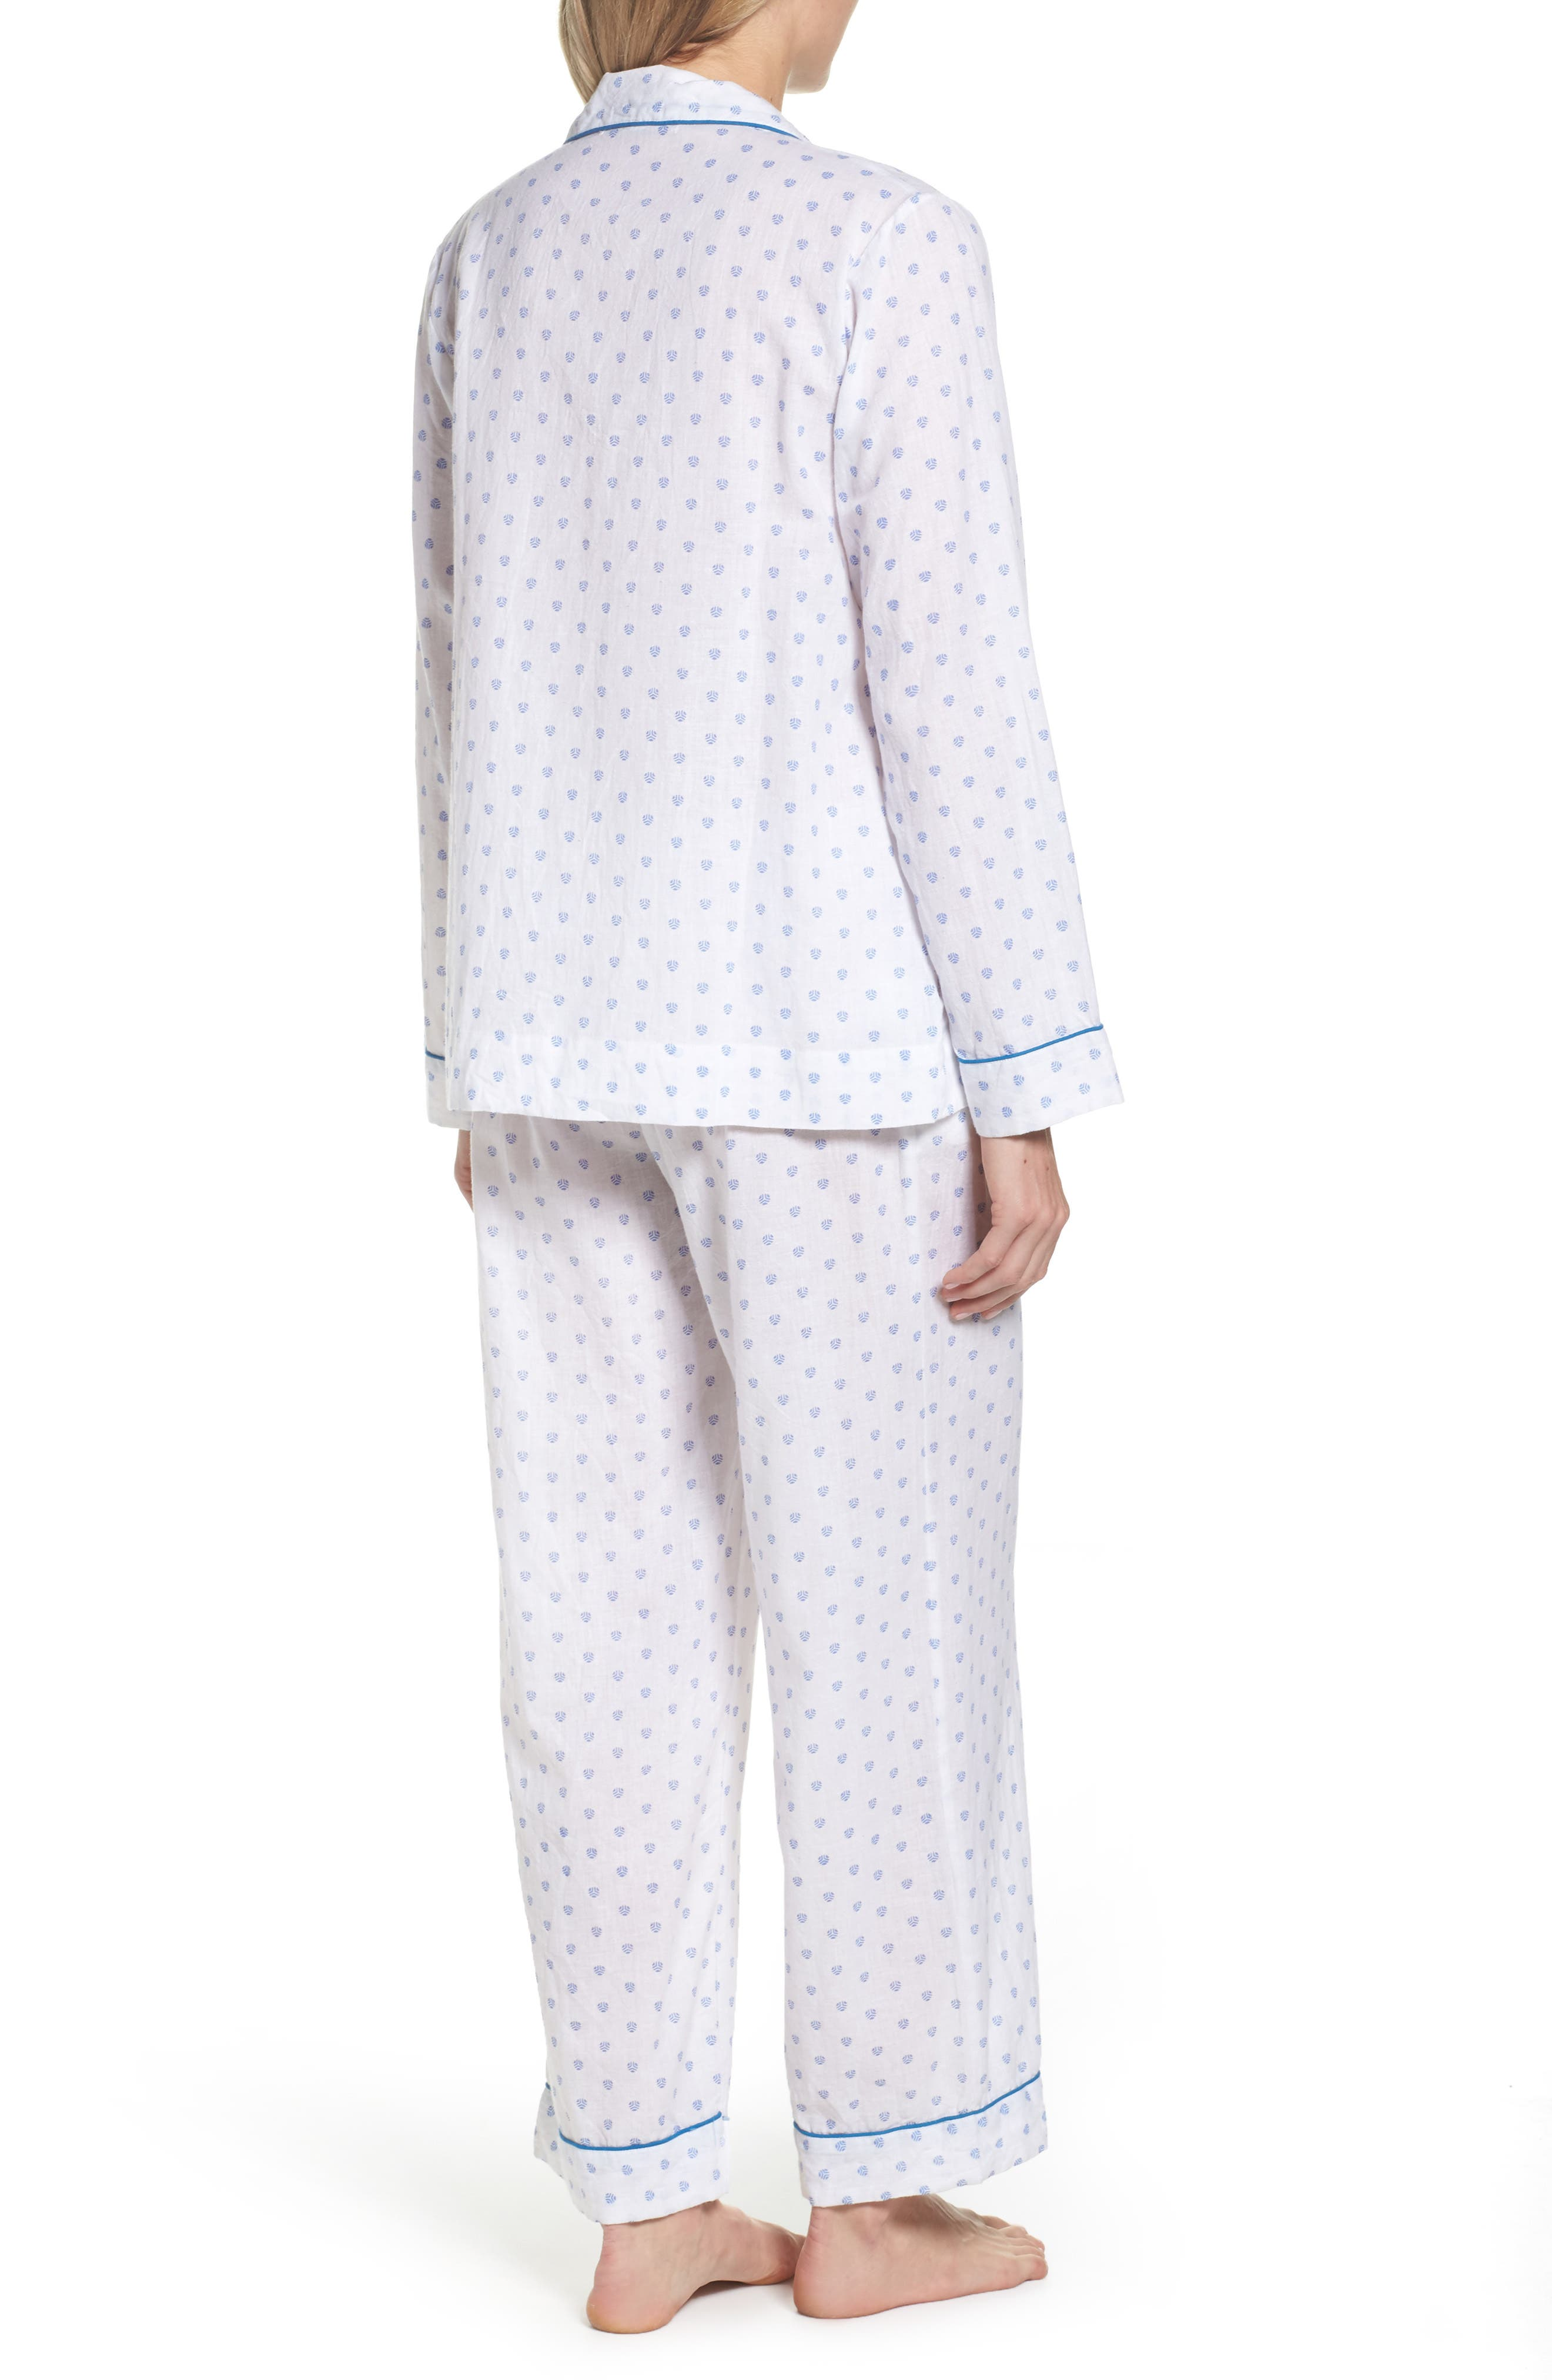 Washed Cotton Pajamas,                             Alternate thumbnail 2, color,                             100